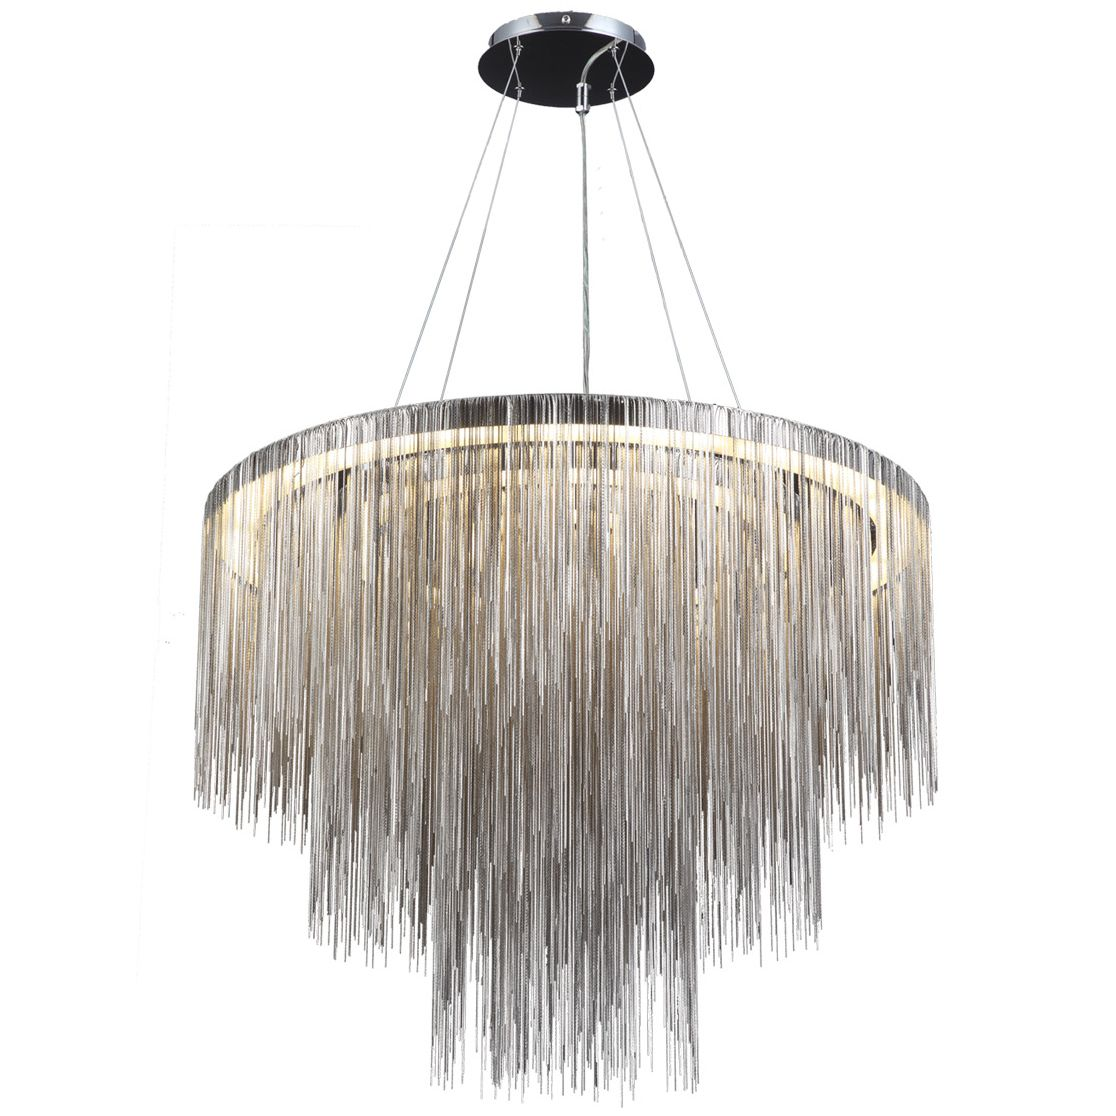 Fountain Ave Chandelier By Avenue Lighting Hf2222 Ch Chandelier Ceiling Lights Pendant Ceiling Lamp Hanging Chandelier